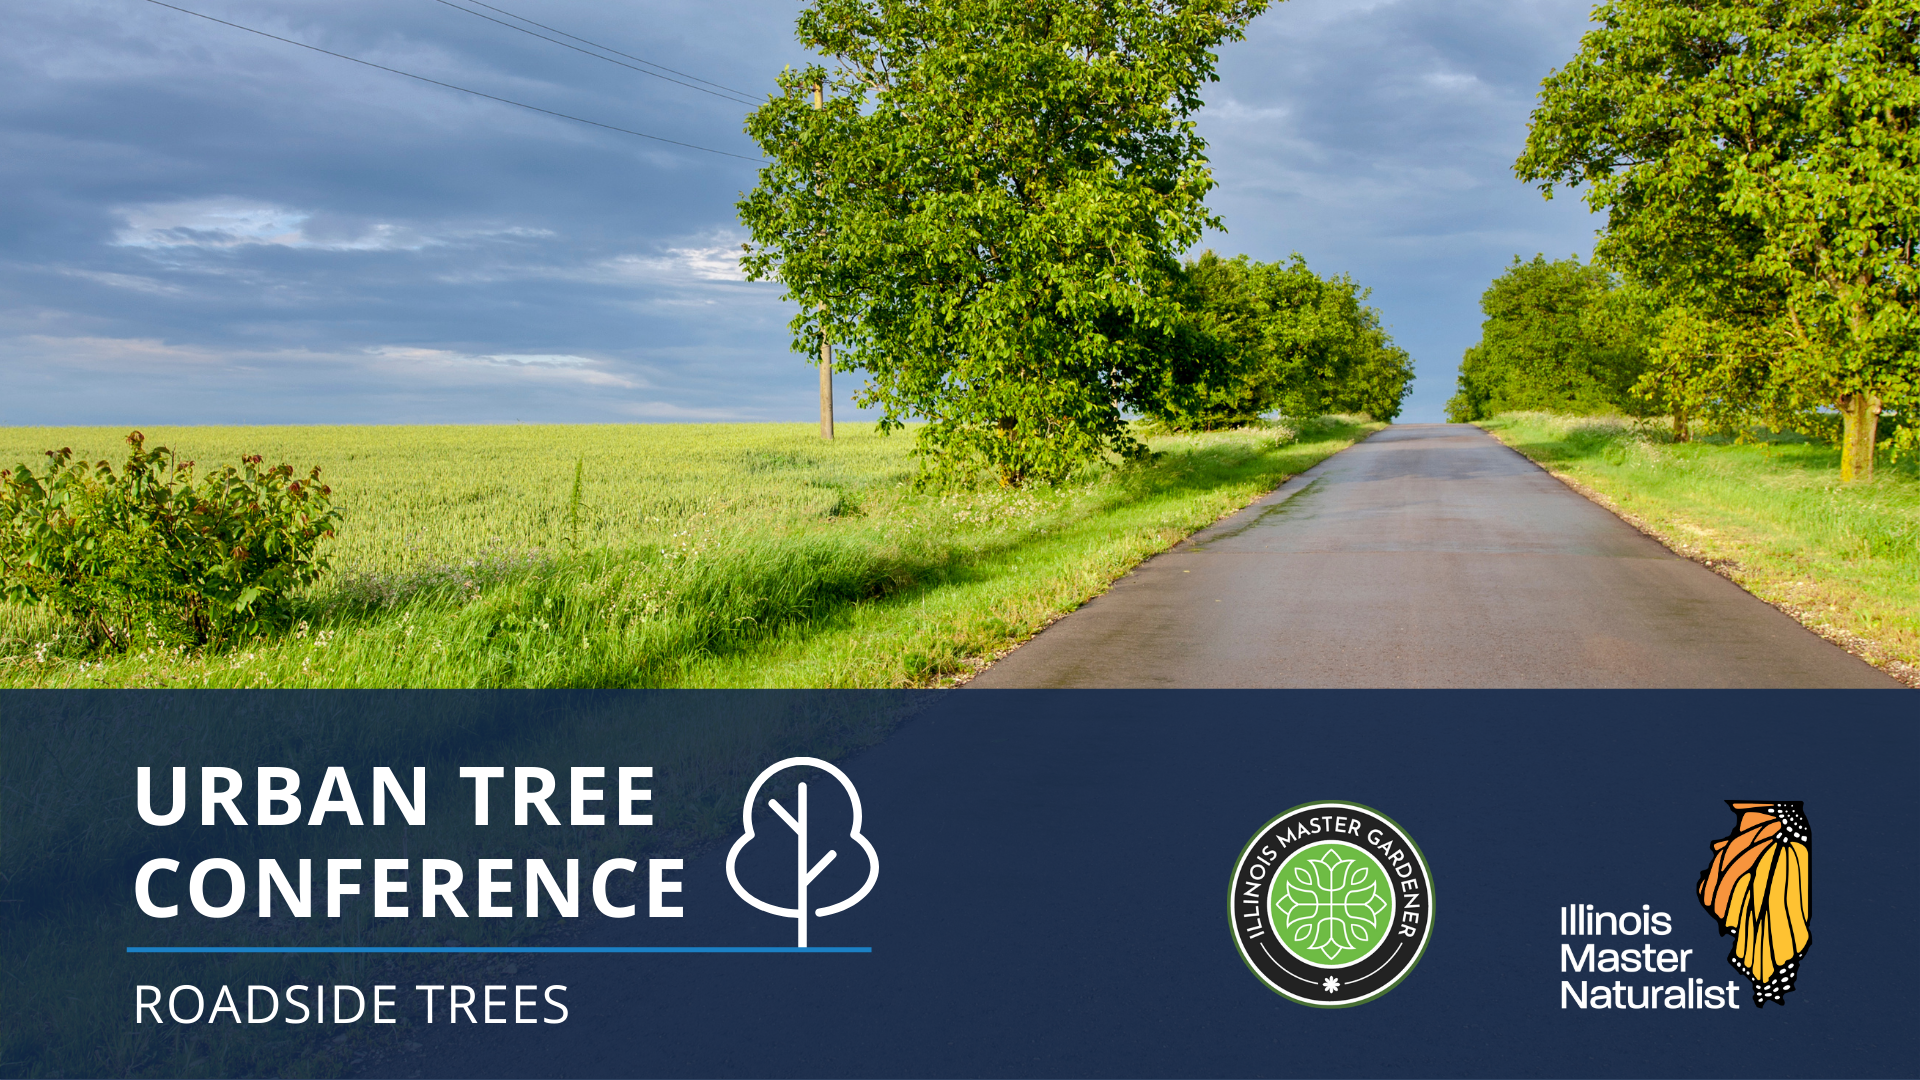 Urban Tree Conference: Best Practices for Growing Roadside Trees